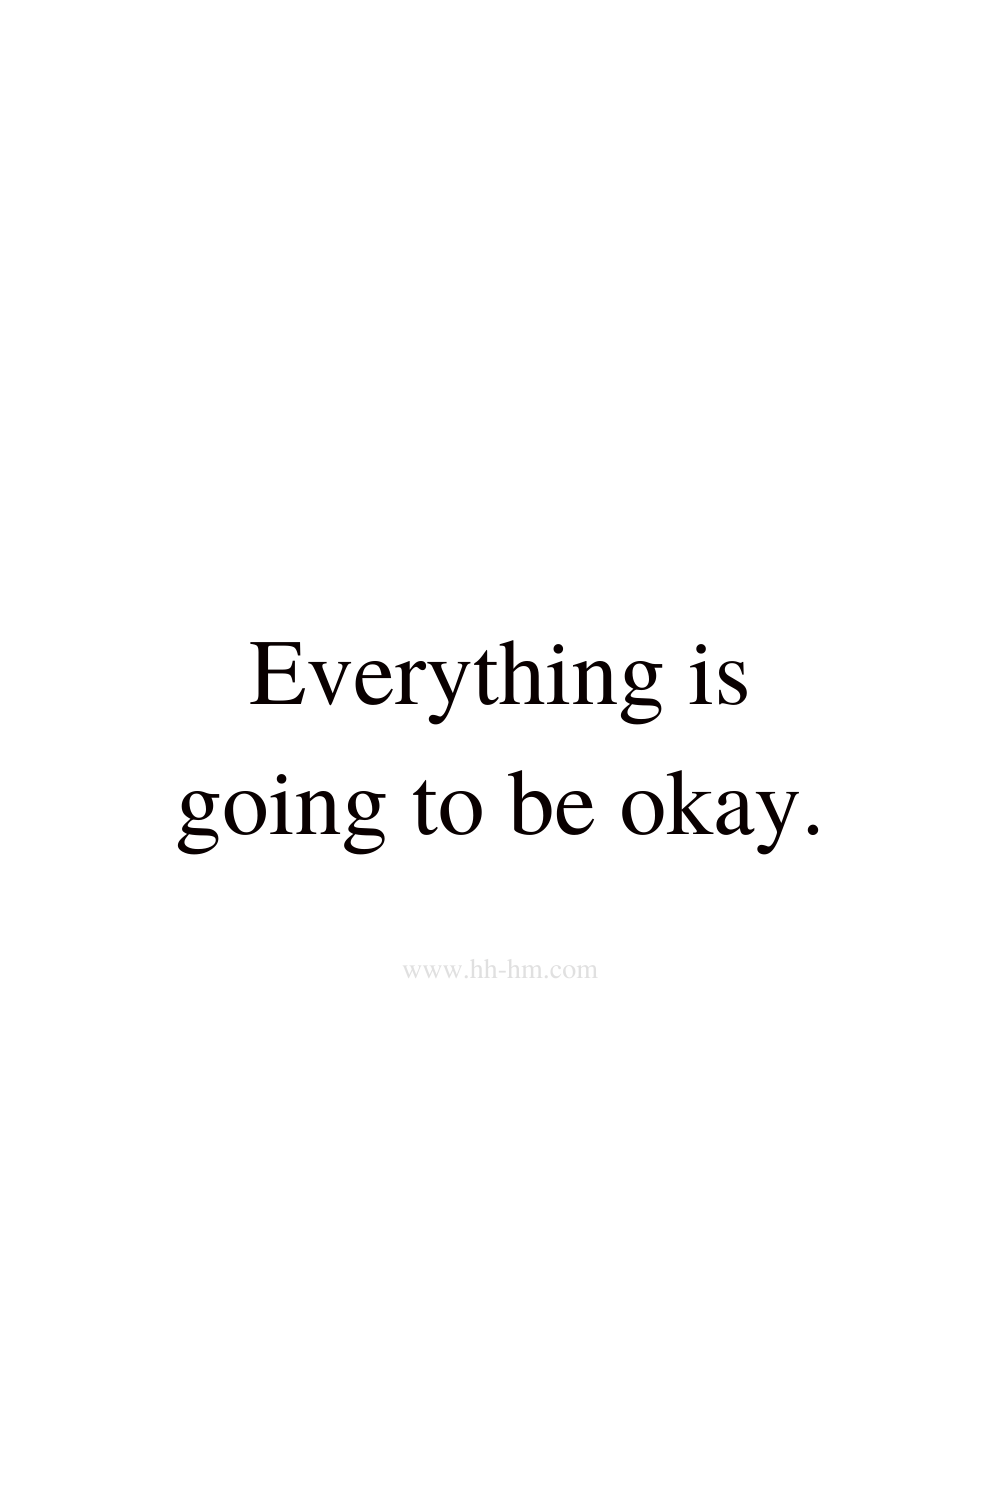 Everything is going to be okay - morning affirmations